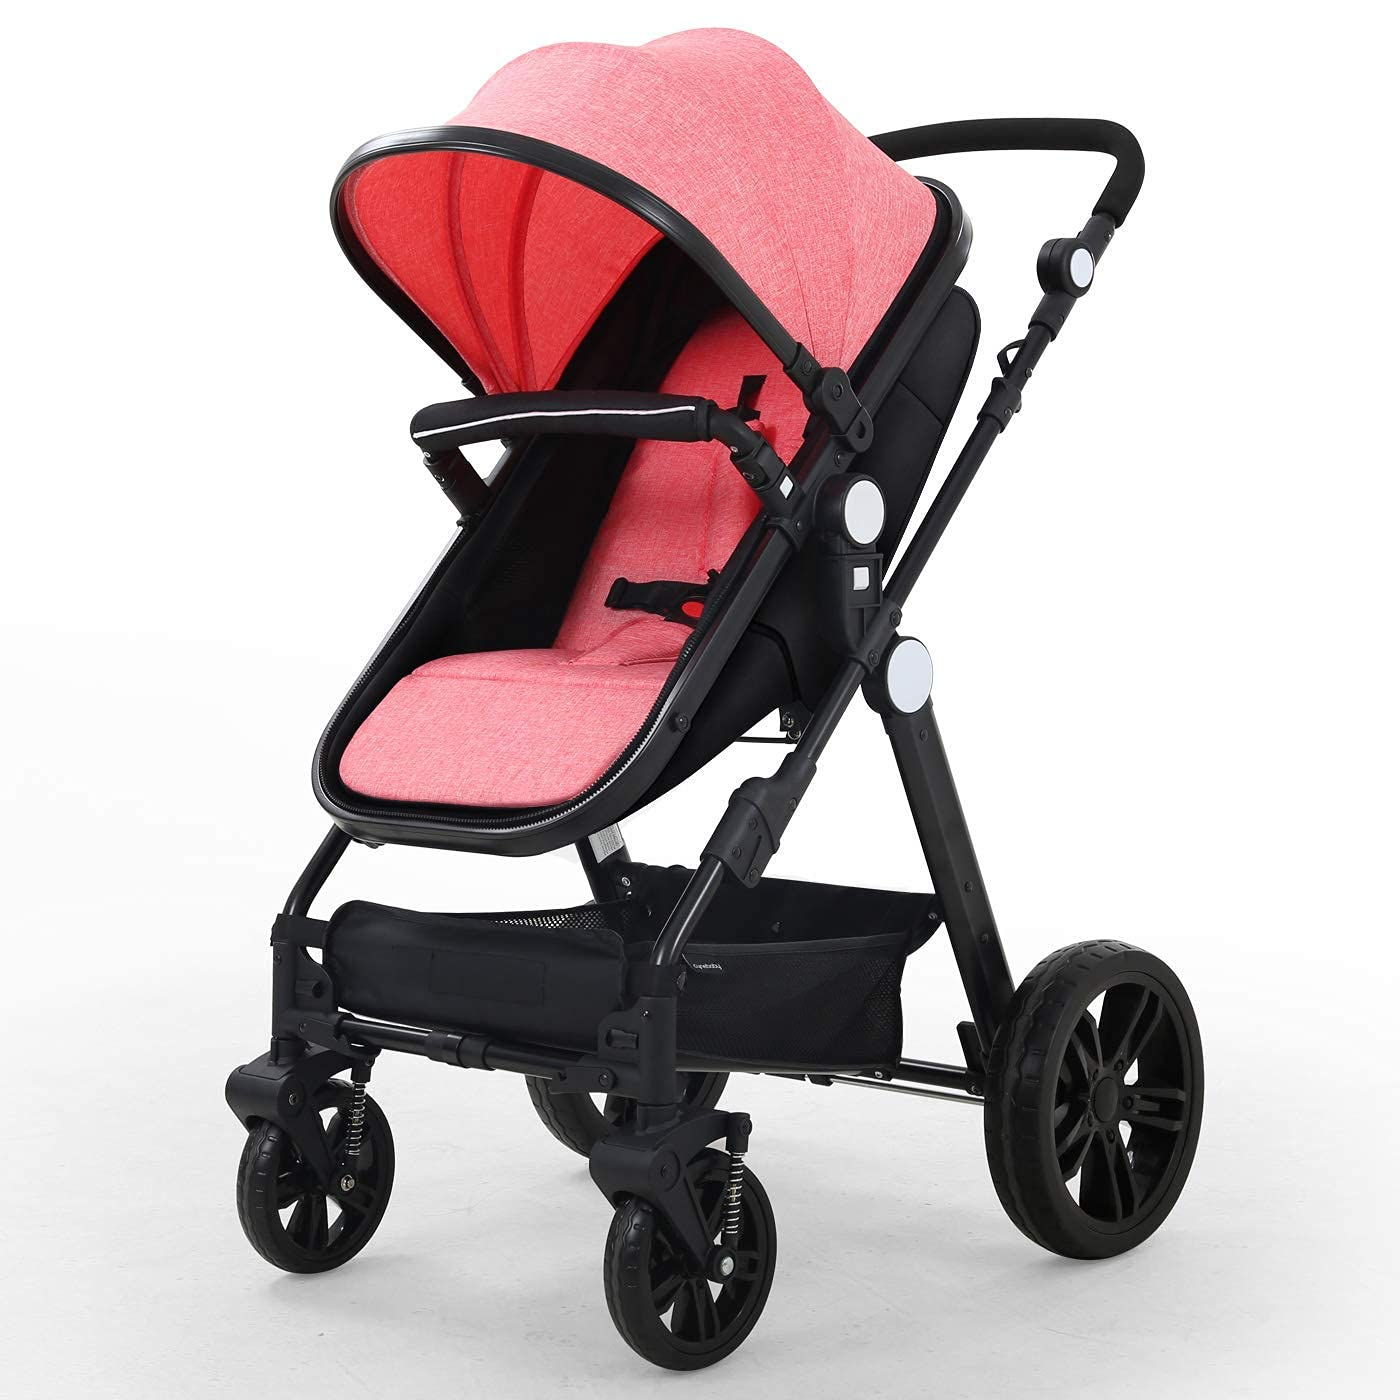 Baby Stroller Newborn Ranking TOP10 Carriage Infant Lux to Reversible Bassinet Dealing full price reduction